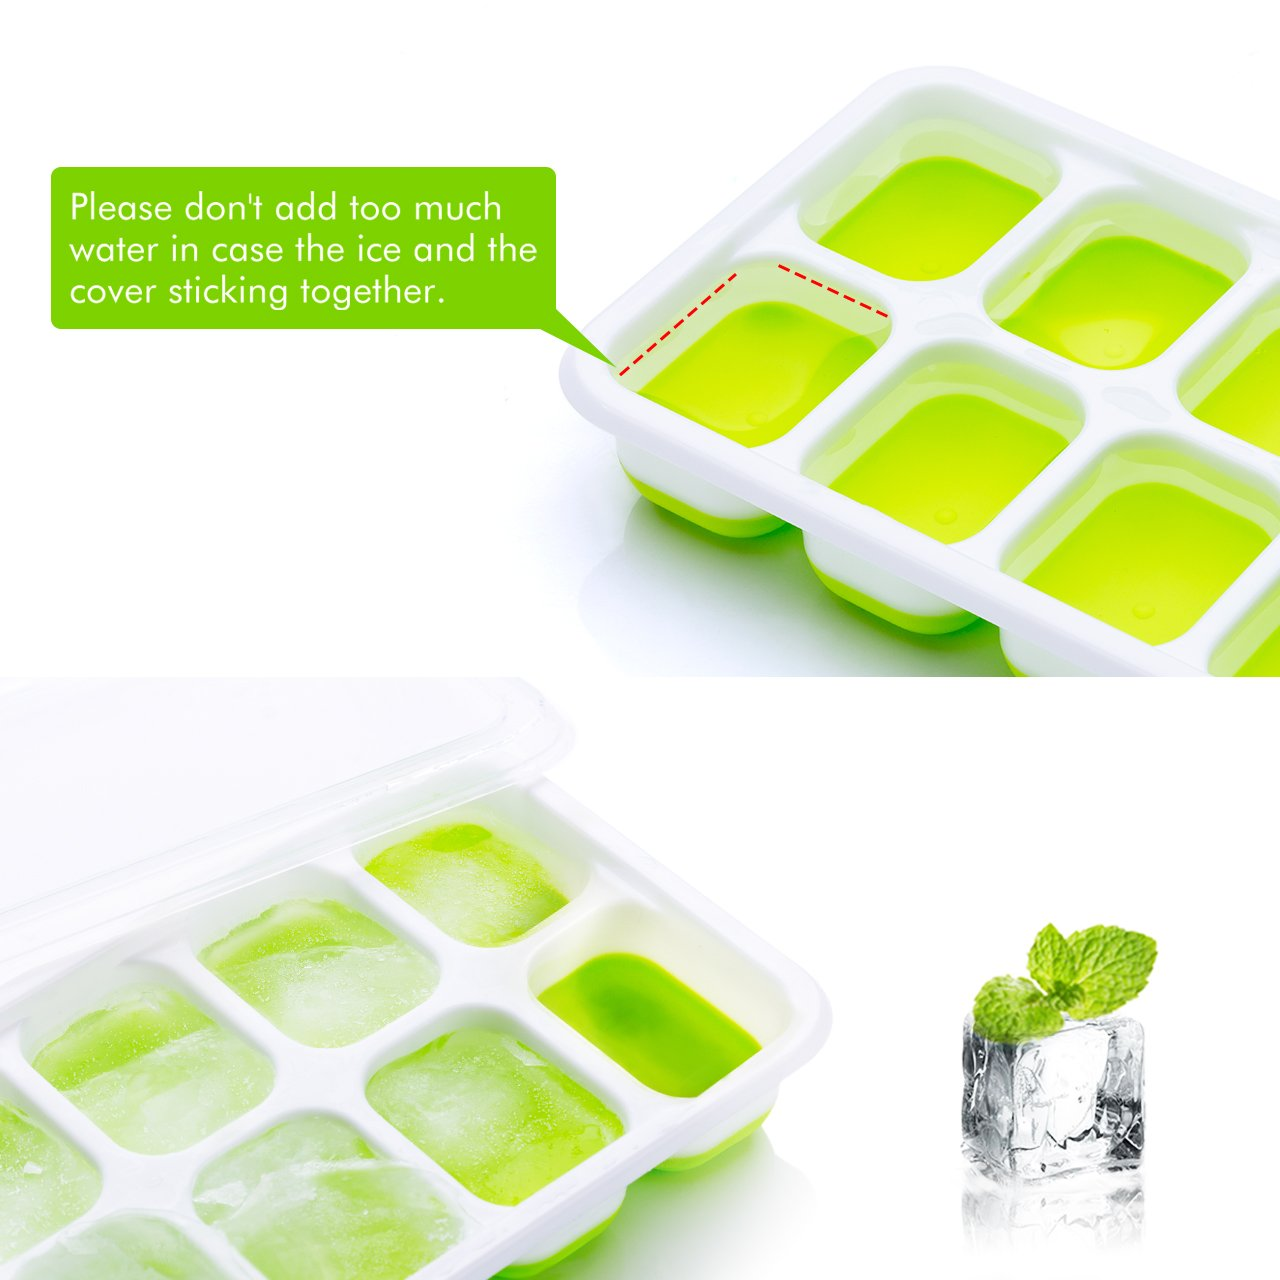 Stackable Durable and Dishwasher Safe Easy-Release Silicone and Flexible 14-Ice Trays with Spill-Resistant Removable Lid LFGB Certified and BPA Free OMorc Ice Cube Trays 4 Pack